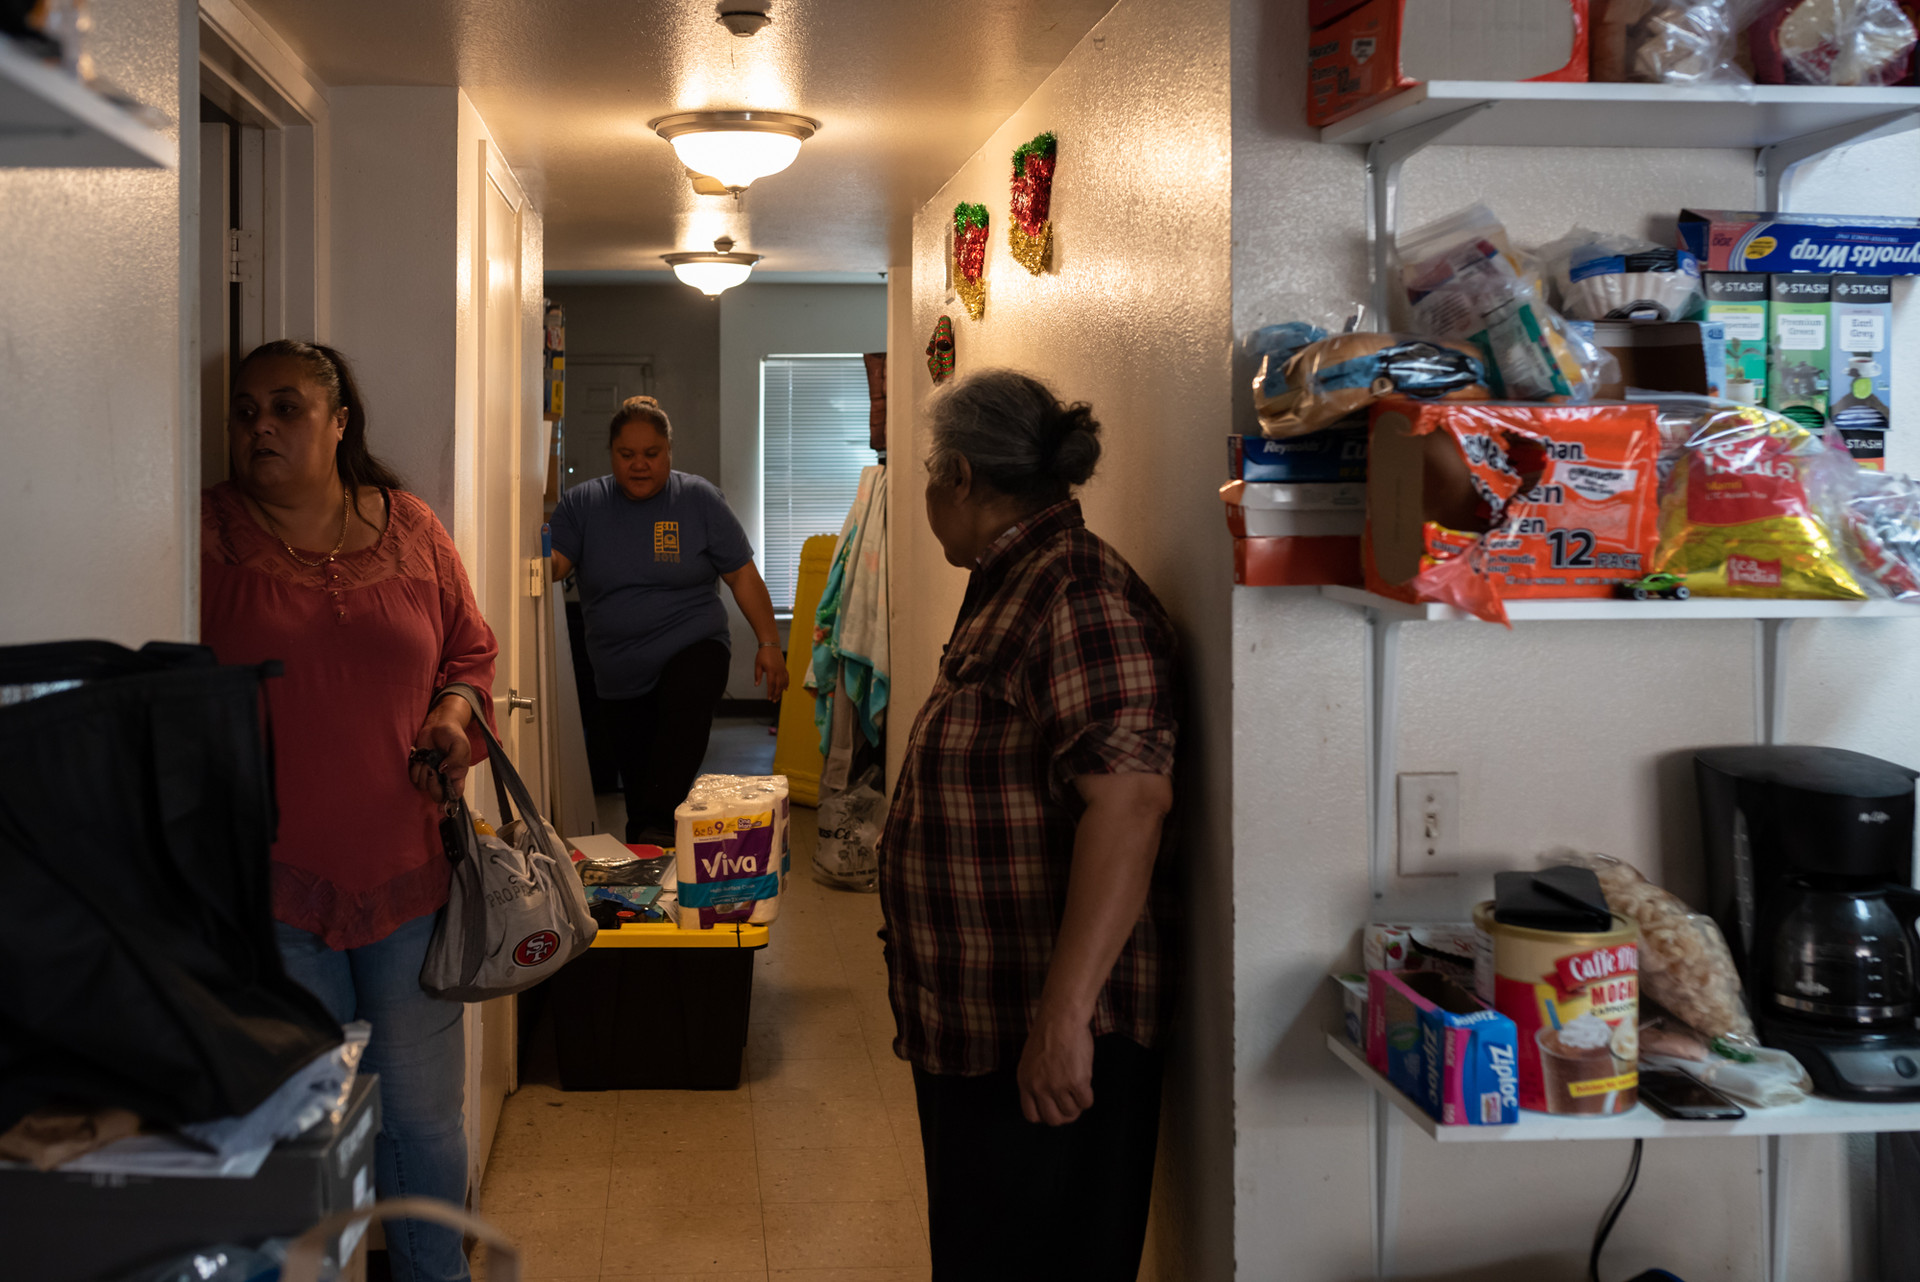 Gaynor lives in public housing with her son, mother, father, and 3 sisters. The community work she does helps connect her with housing opportunities.